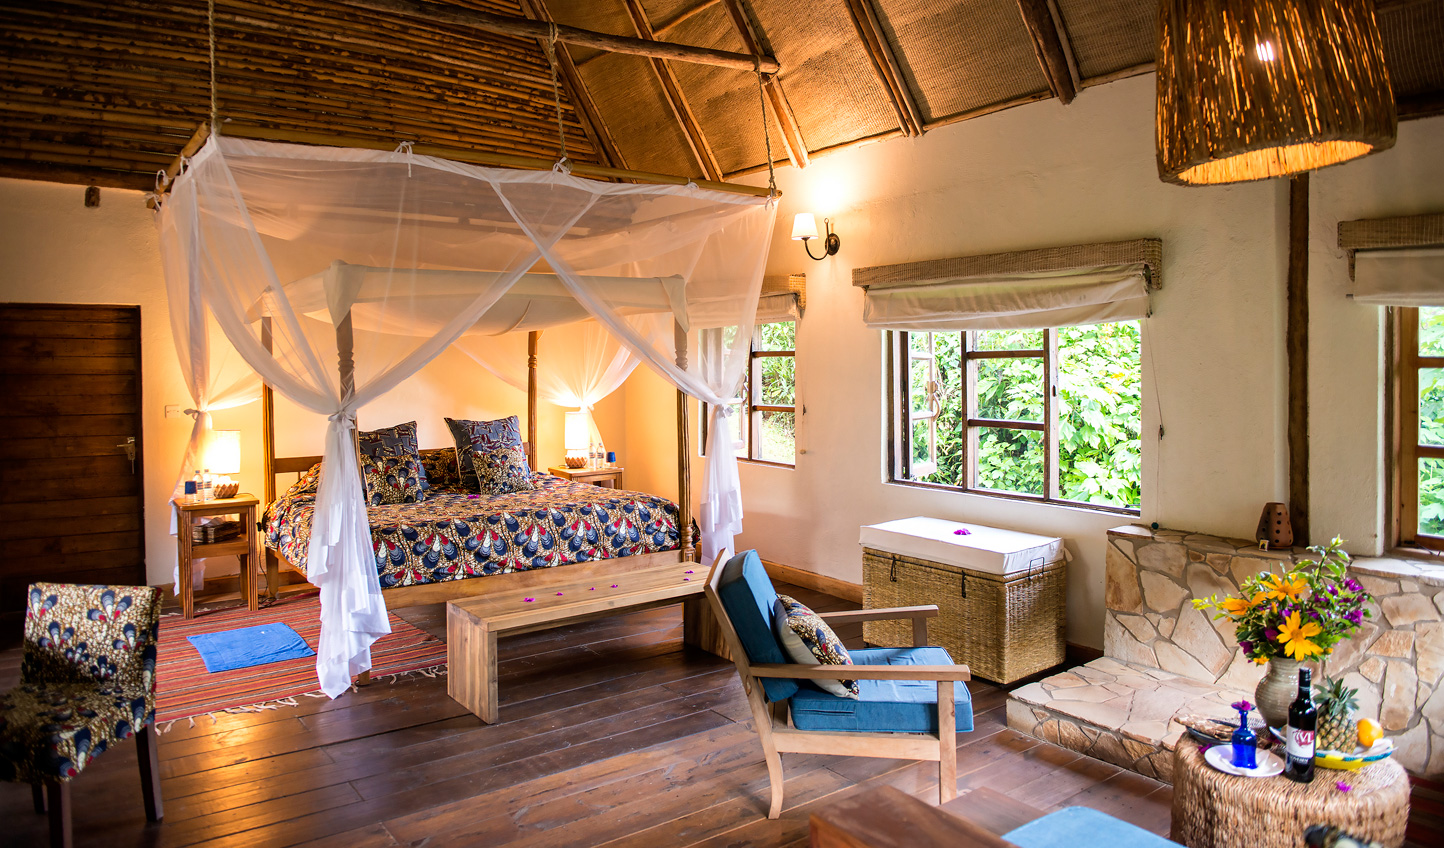 Stylish bandas that are authentically African but with all the modern amenities